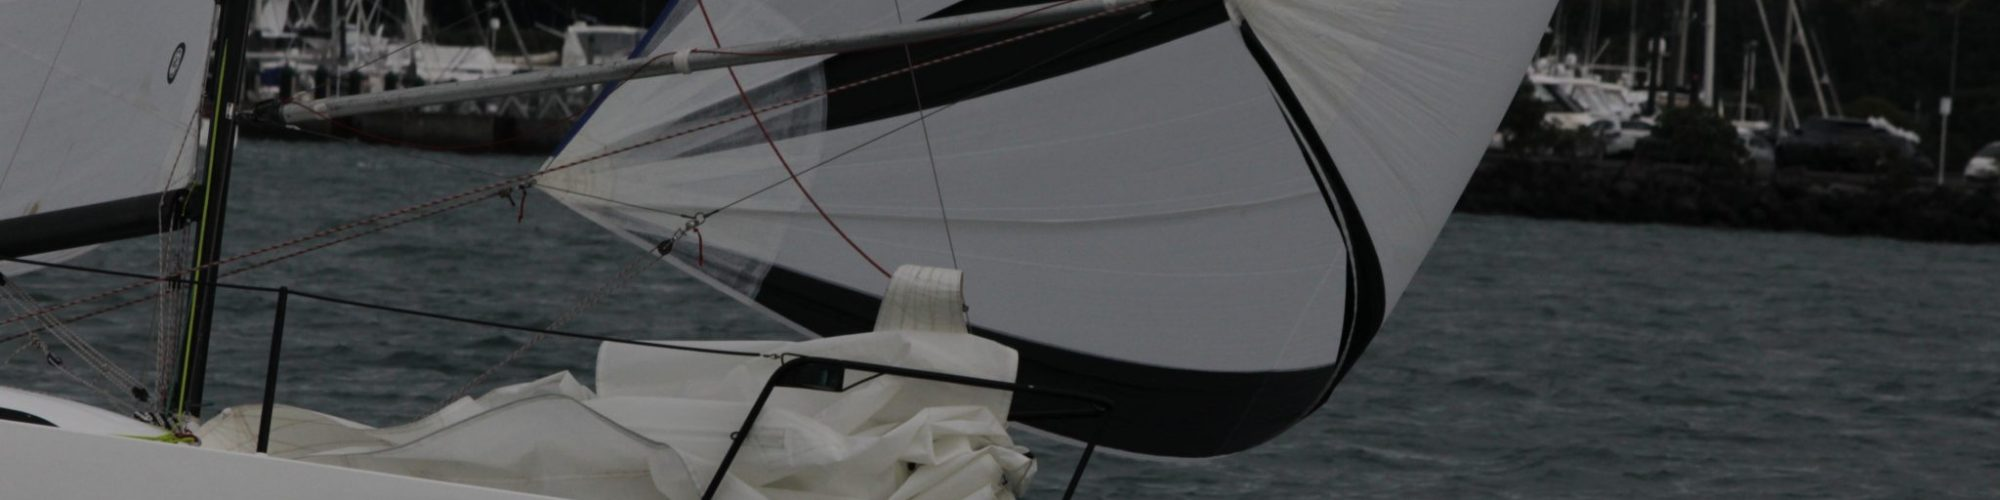 Sailpass header